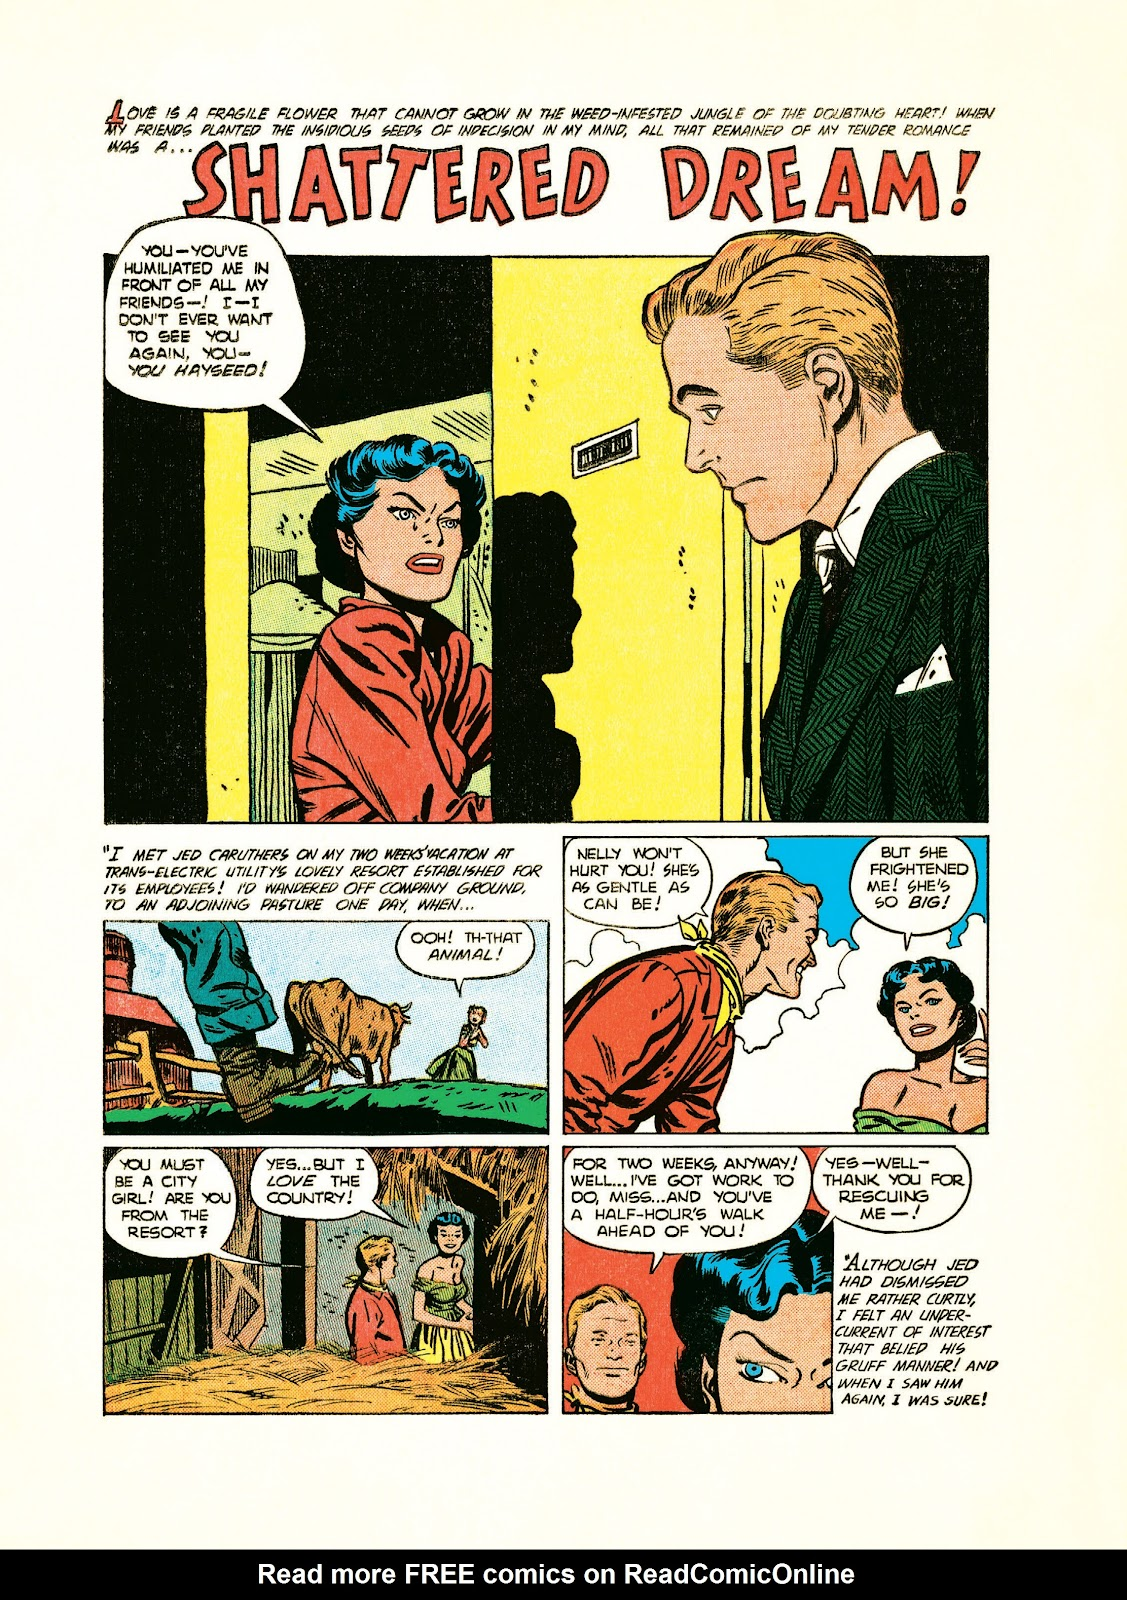 Read online Setting the Standard: Comics by Alex Toth 1952-1954 comic -  Issue # TPB (Part 1) - 81